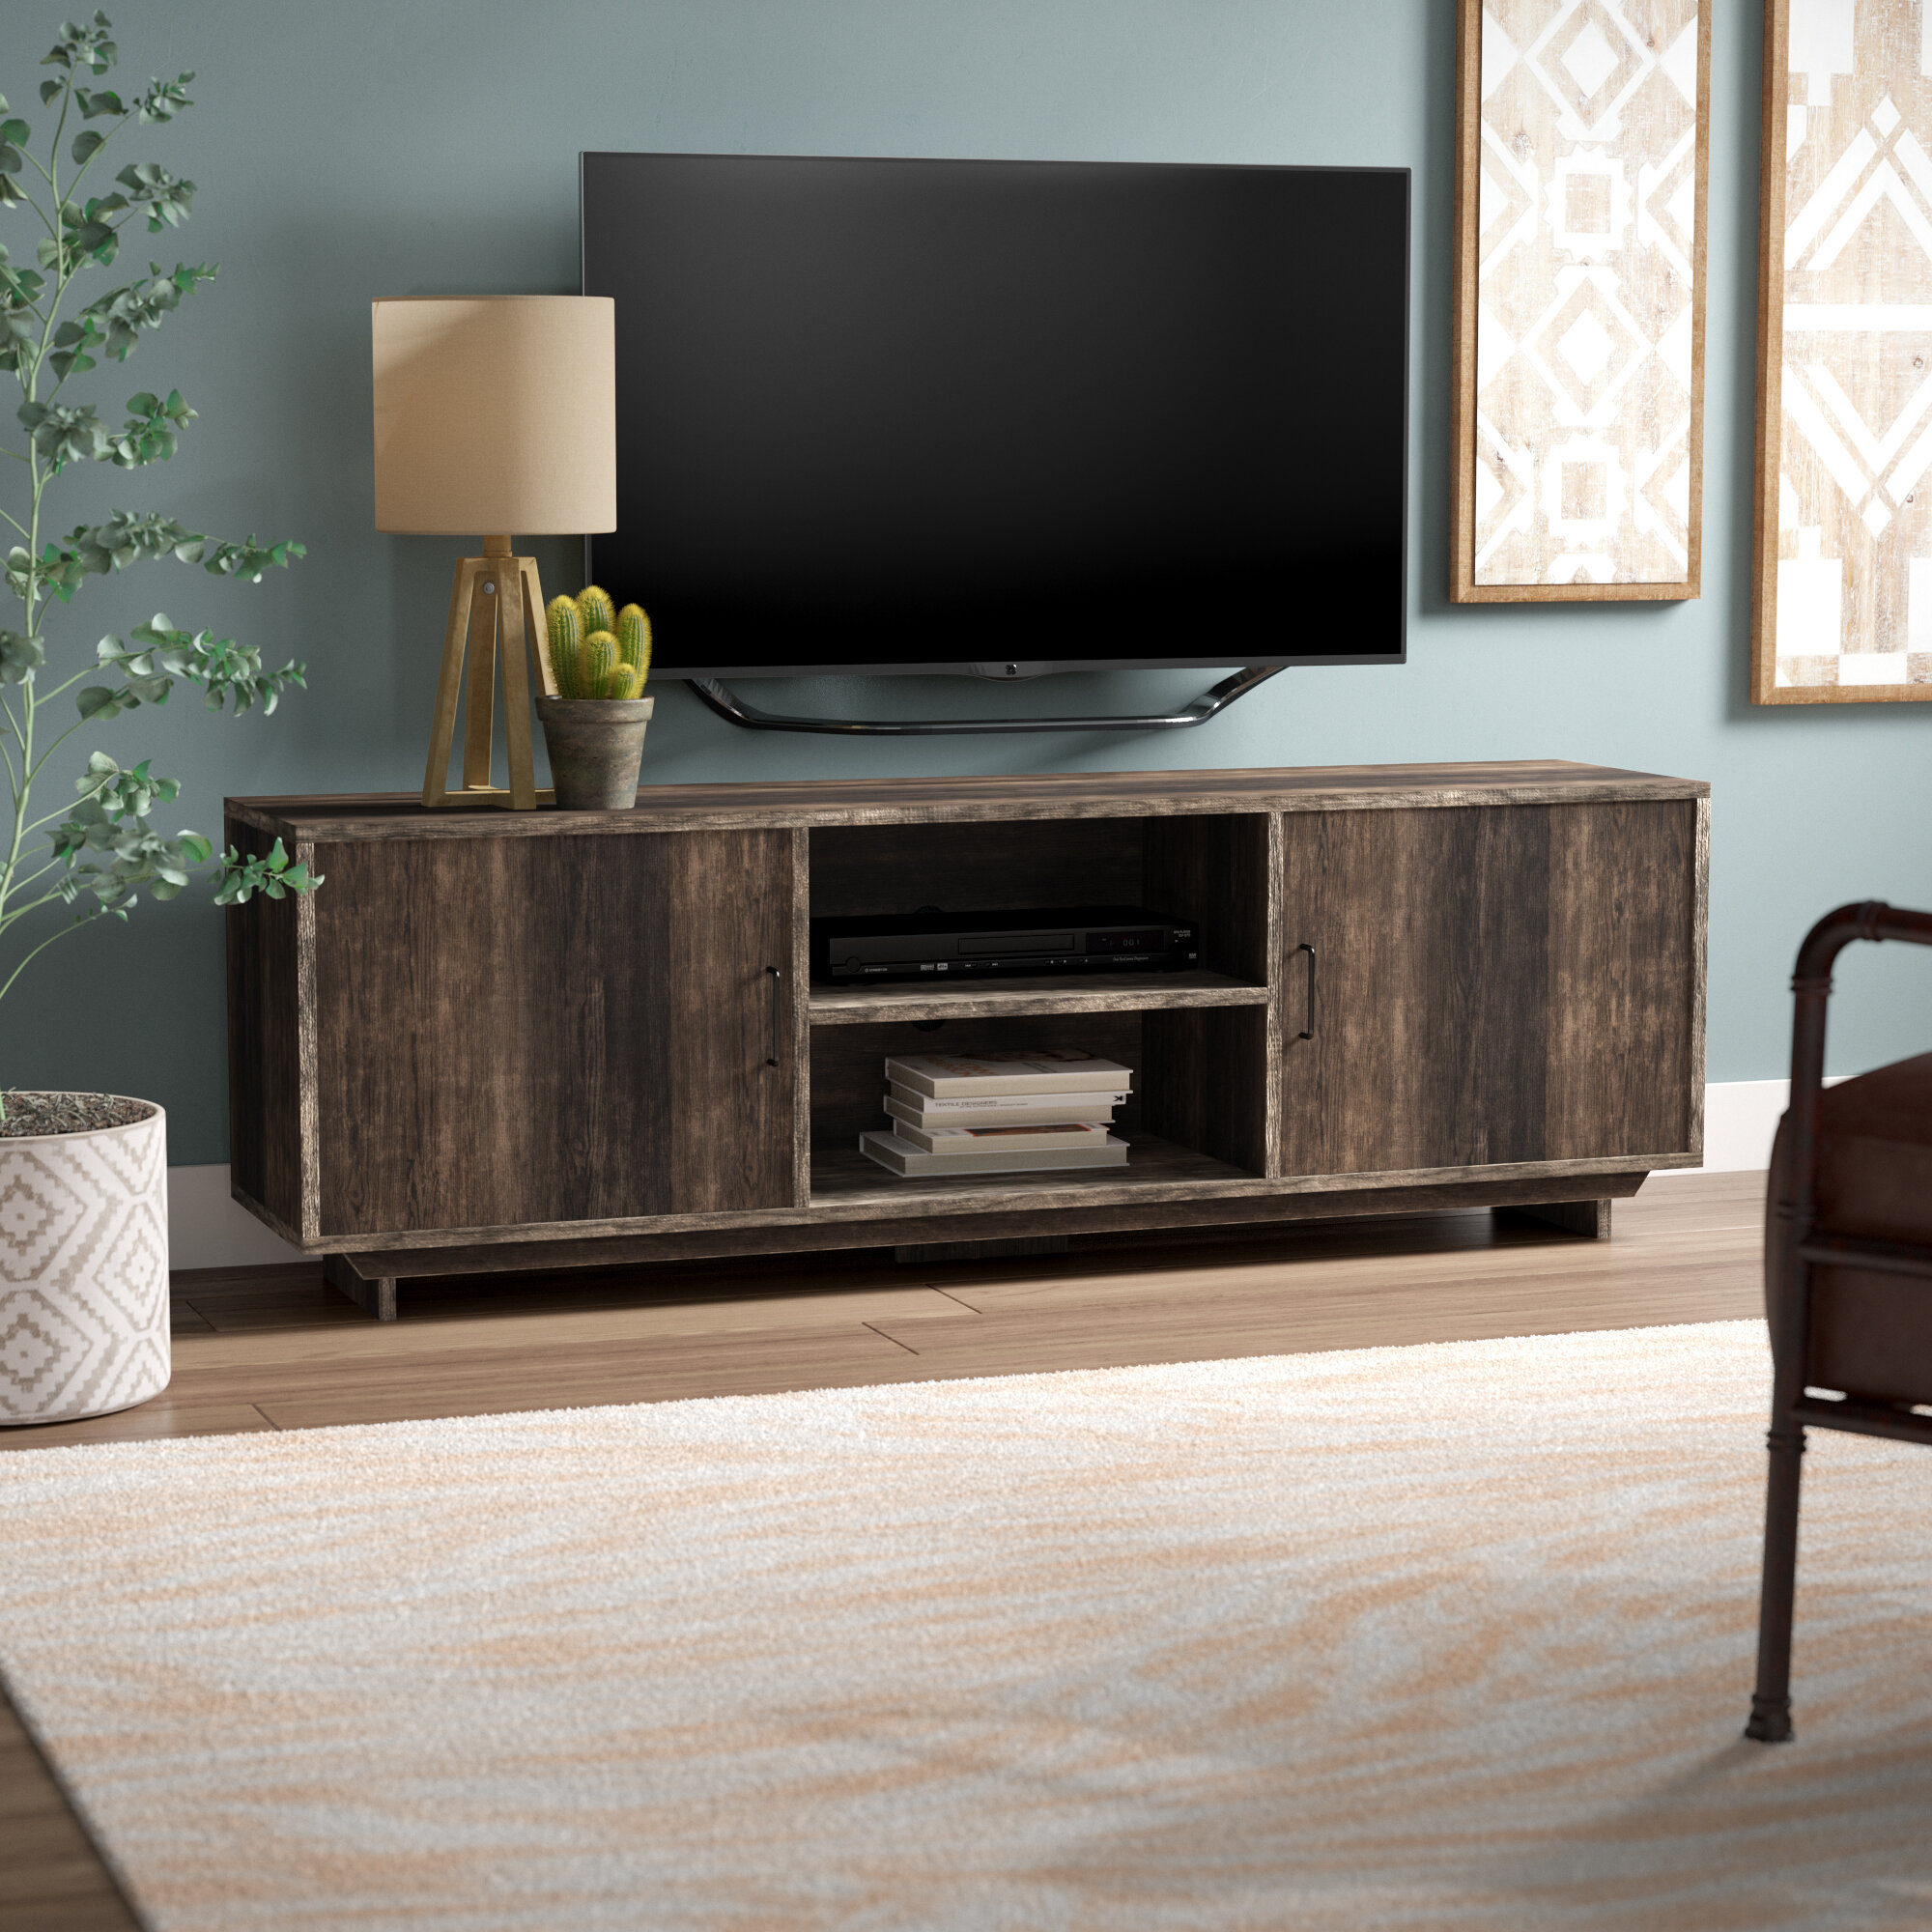 Union rustic lamy tv stand for tvs up to 65 reviews wayfair